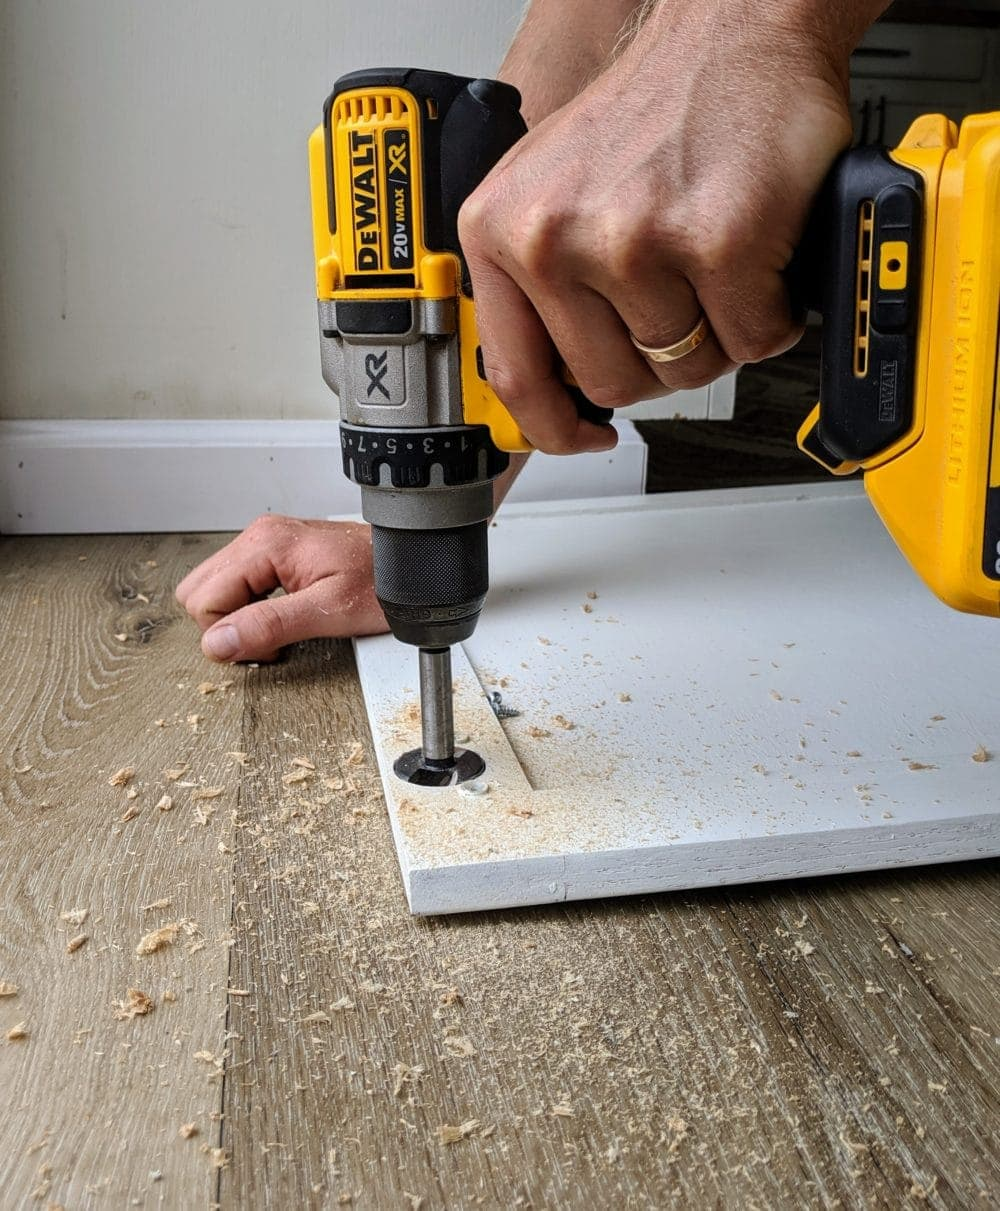 Drilling with a DeWalt 20V Max Drill